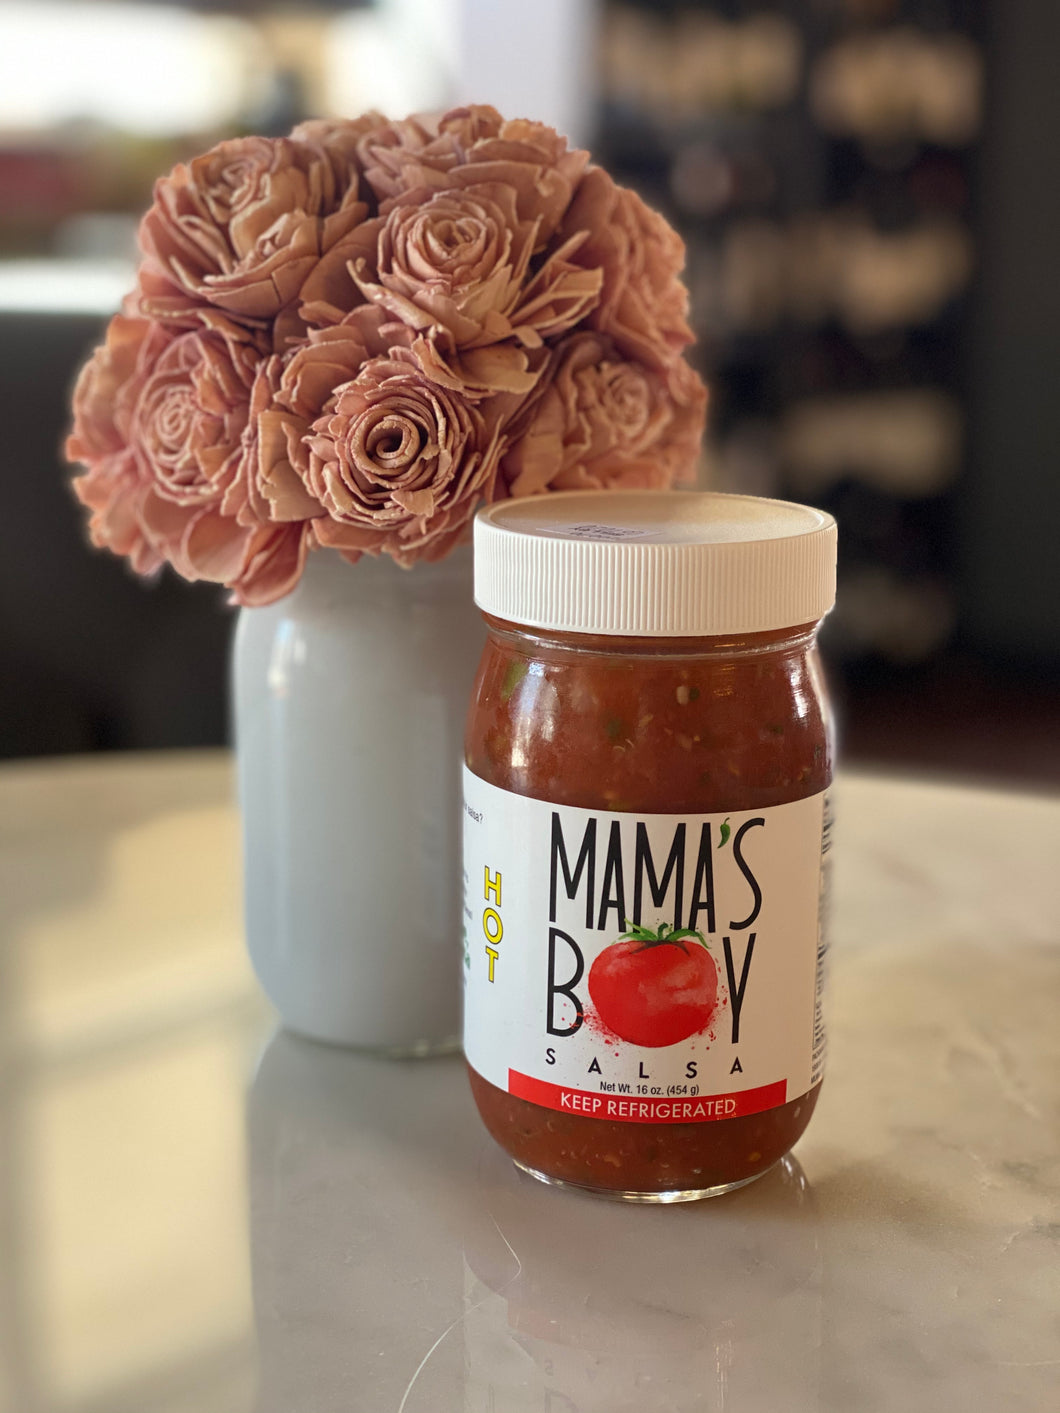 Mama's Boy Salsa - HOT